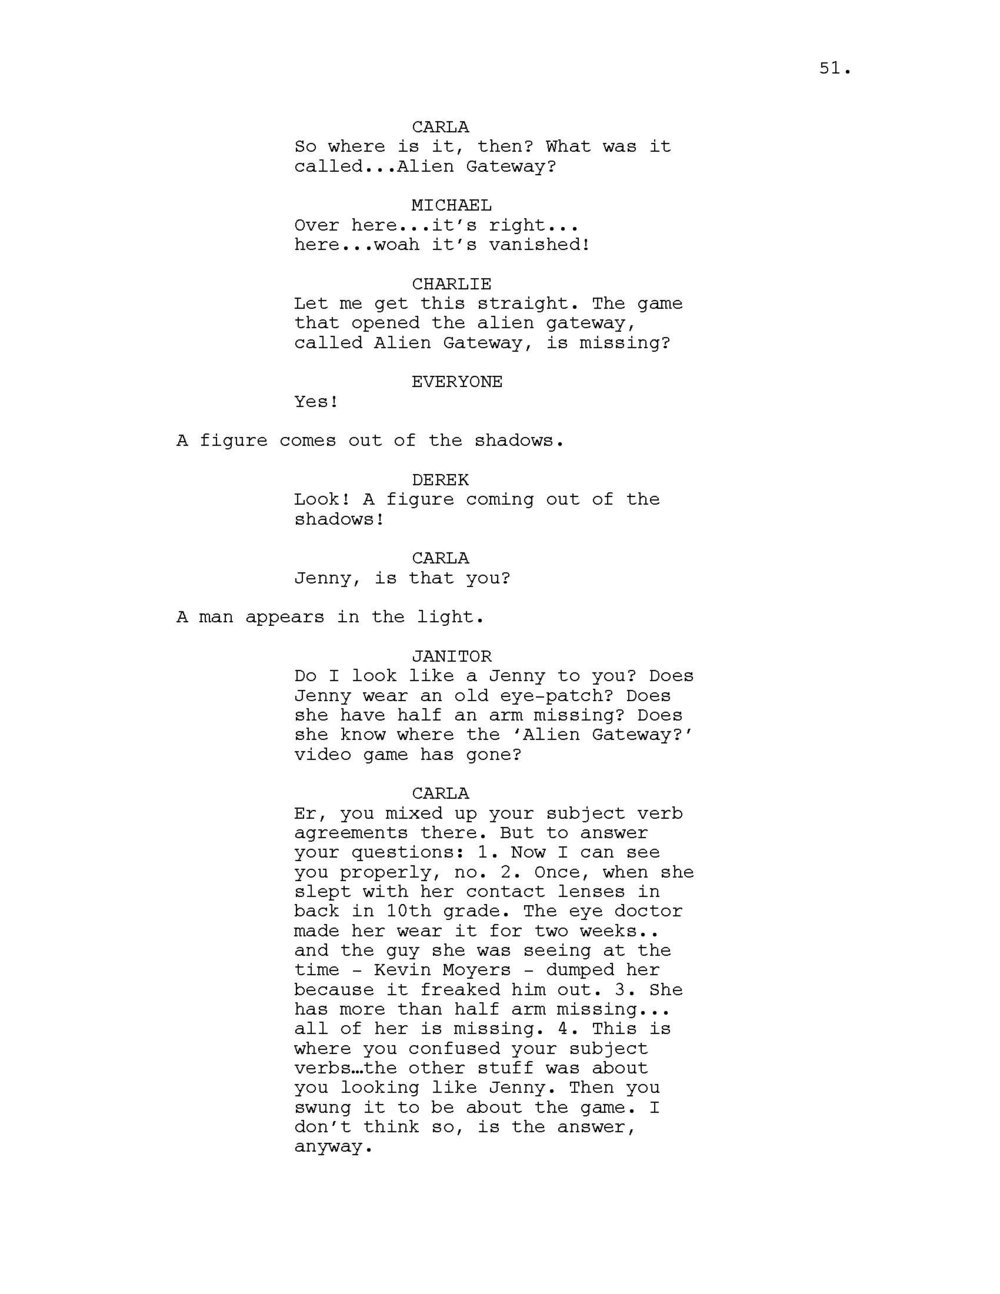 INVISIBLE WORLD SCRIPT_Page_052.jpg